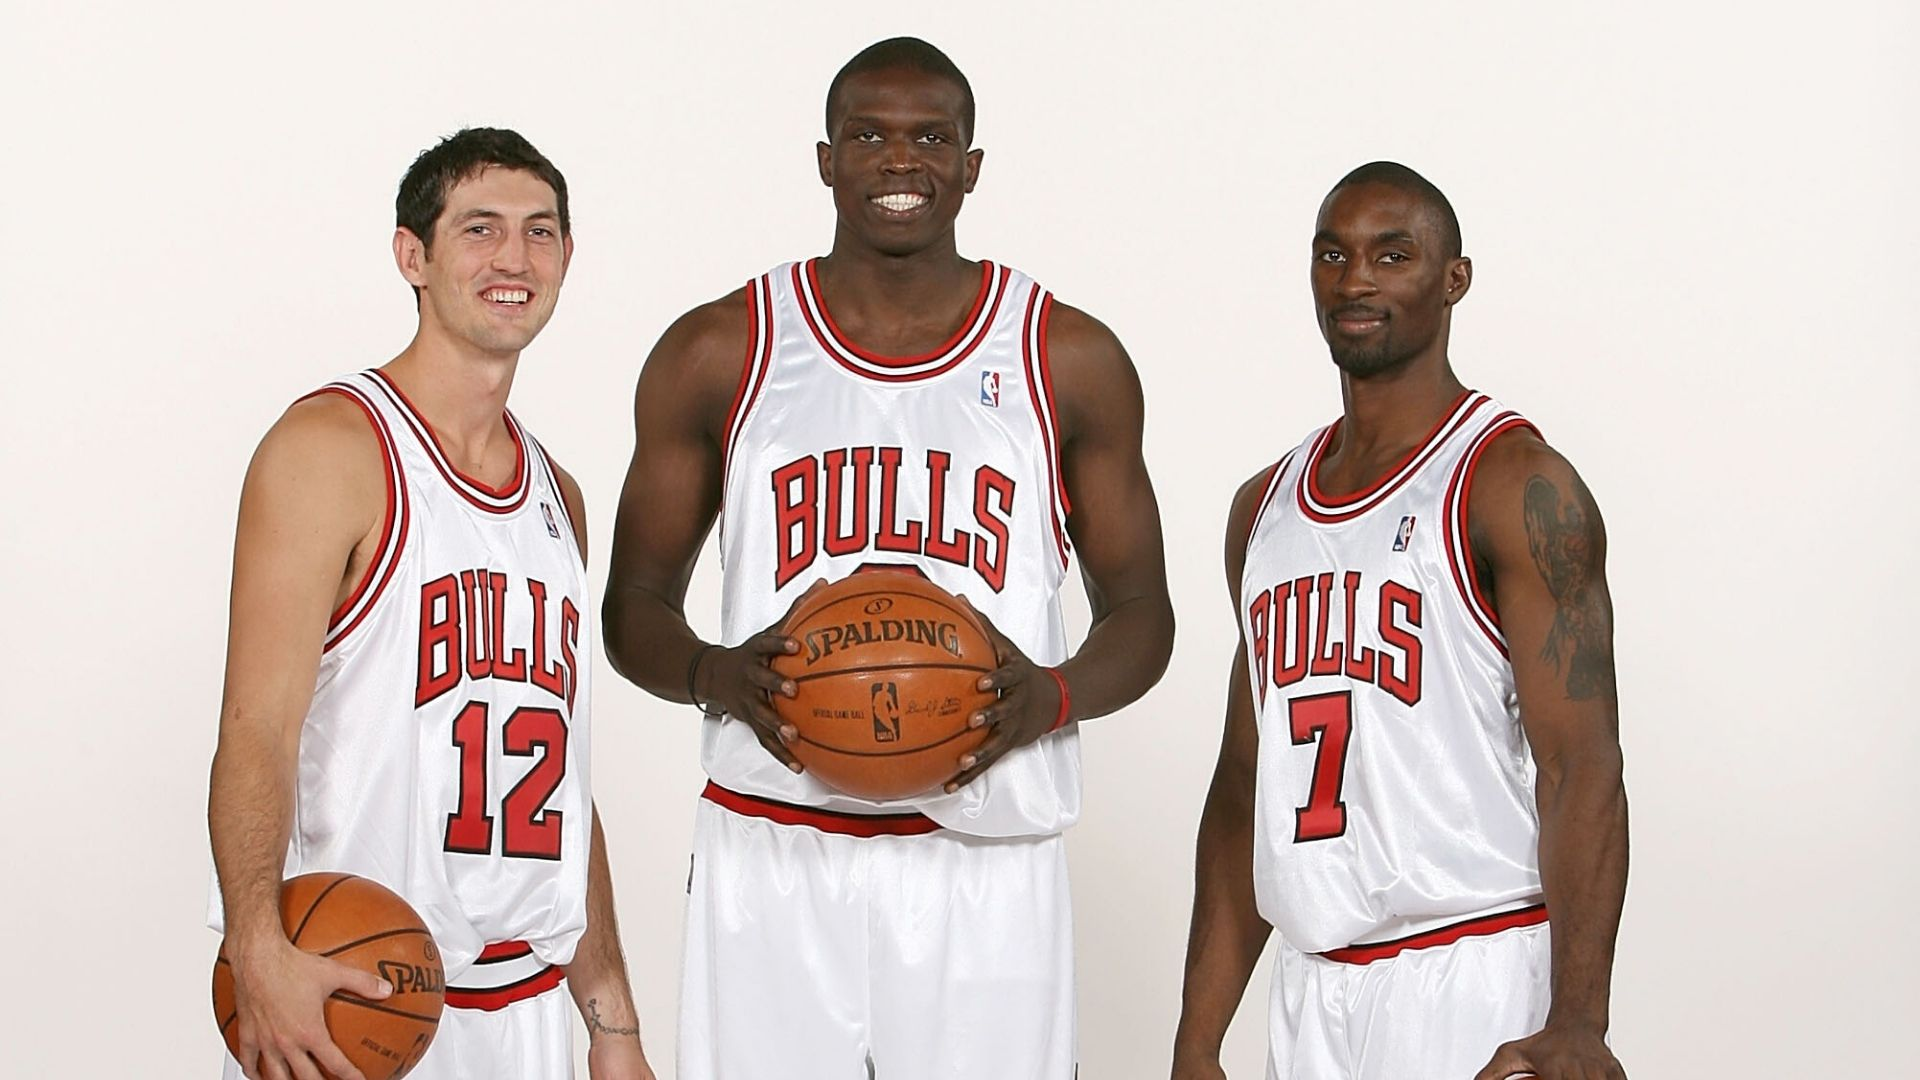 the Chicago Bulls after Michael